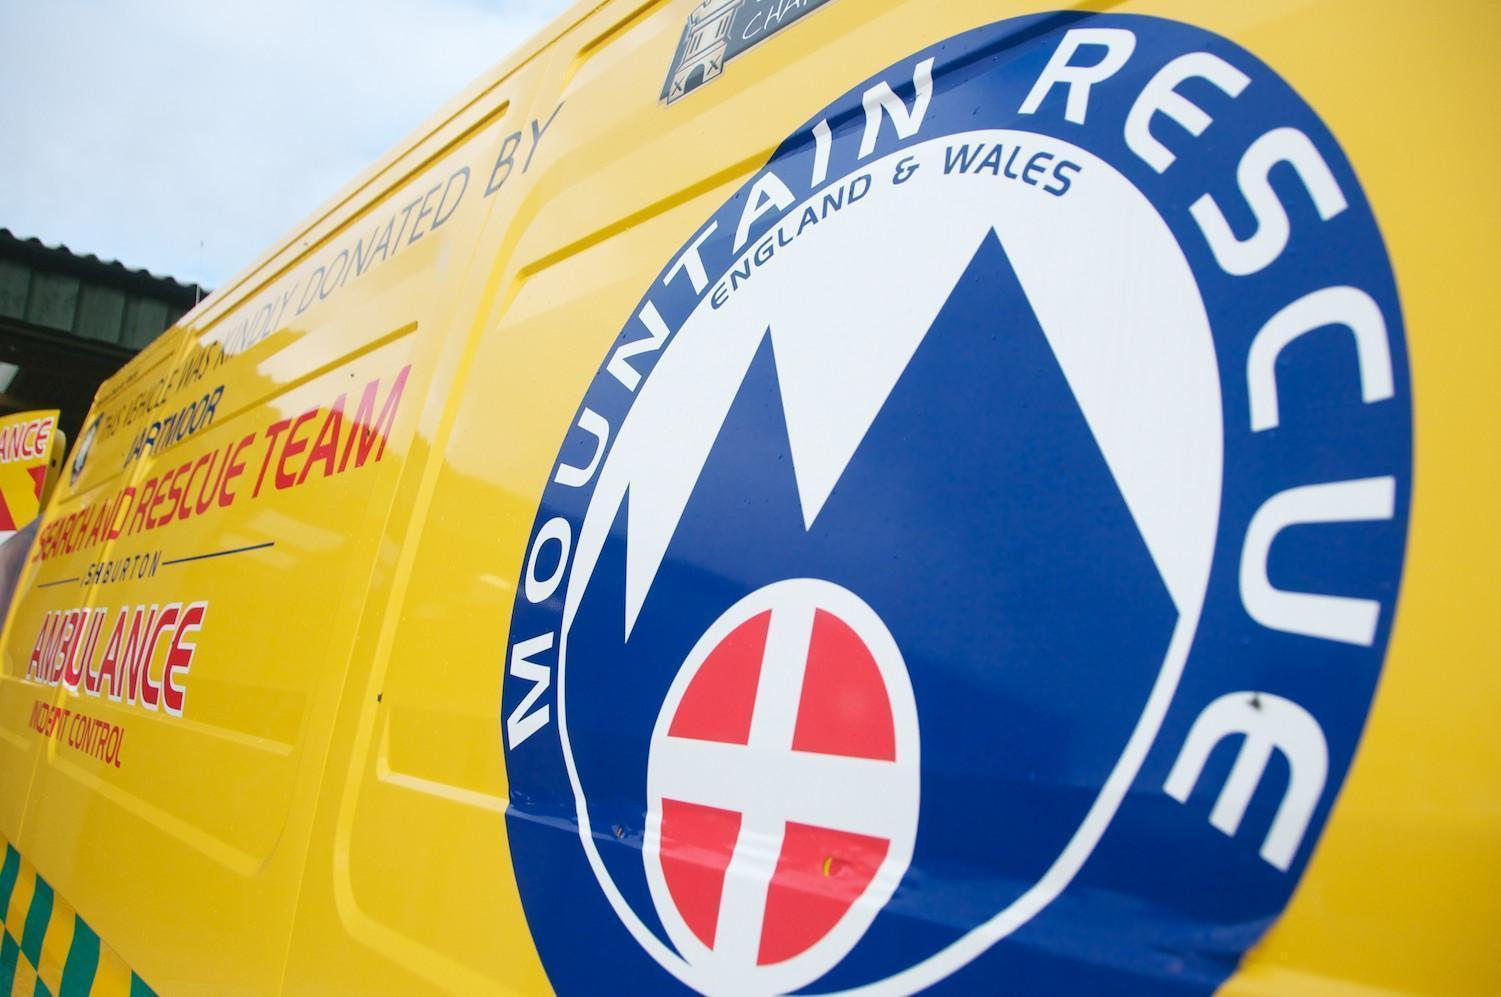 Side of control vehicle displaying mountain rescue logo